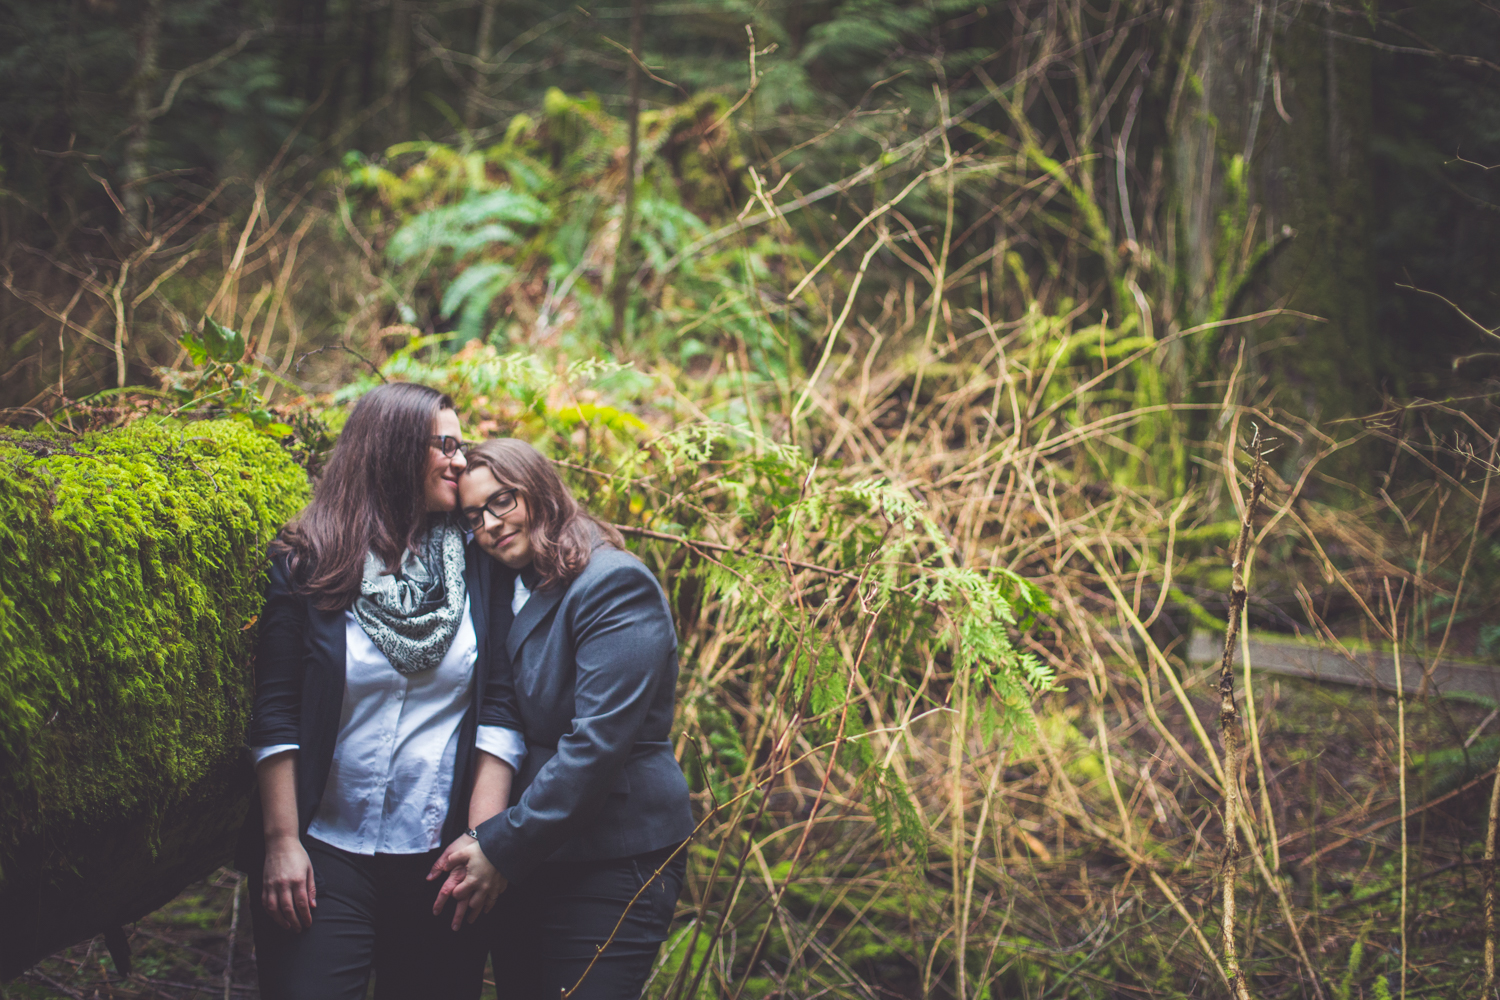 cathedral-grove-elopement-photos-35.jpg